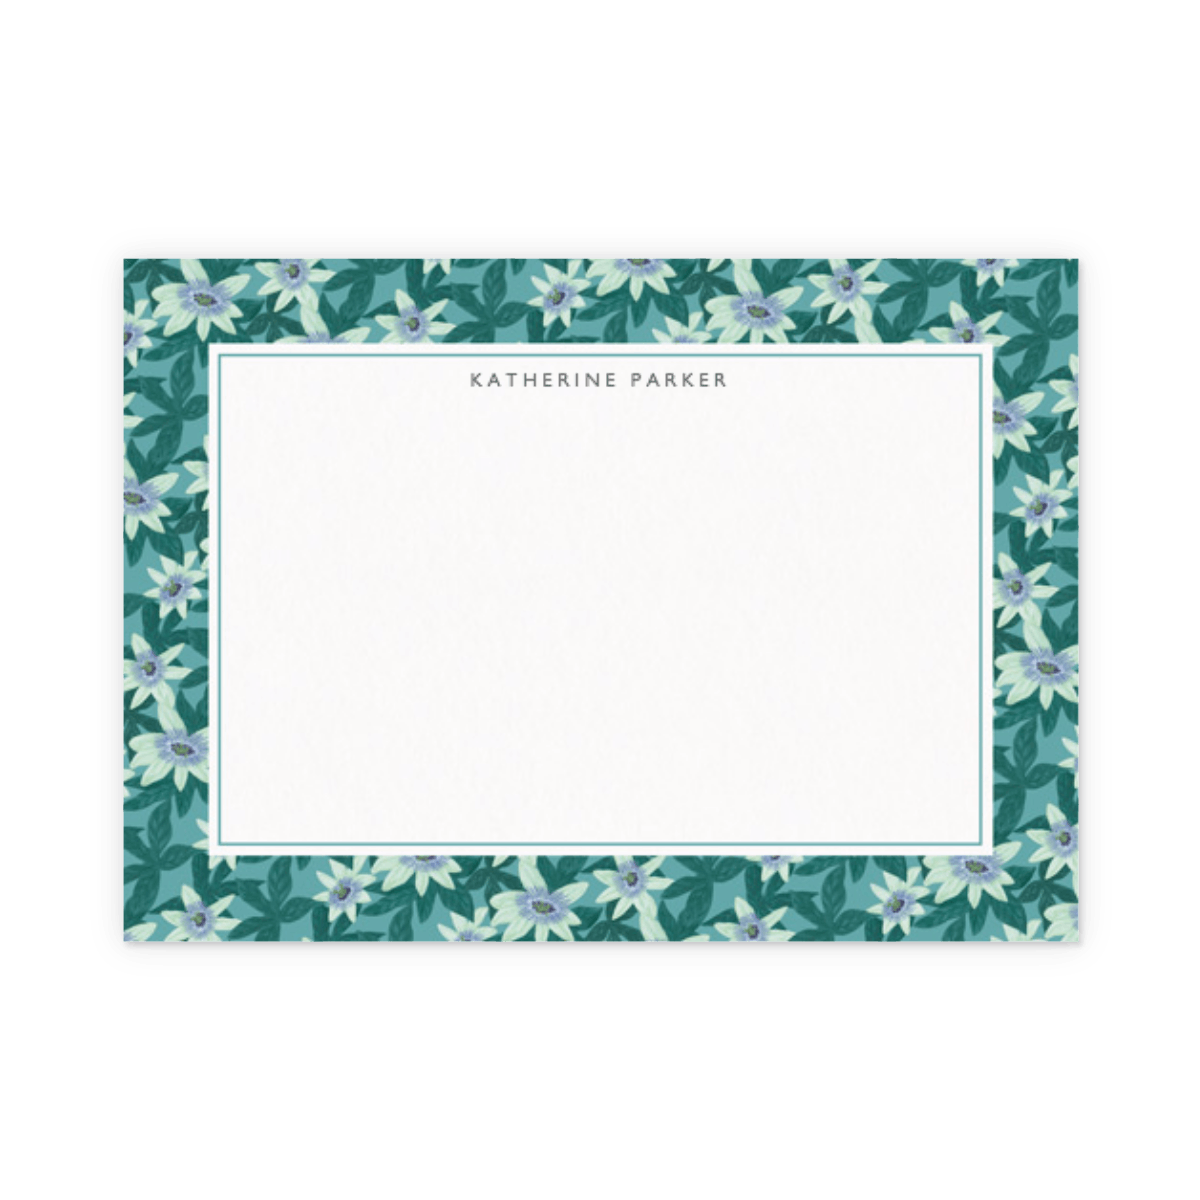 Https%3a%2f%2fwww.papier.com%2fproduct image%2f20617%2f10%2fpassion flower green 5272 front 1490091268.png?ixlib=rb 1.1